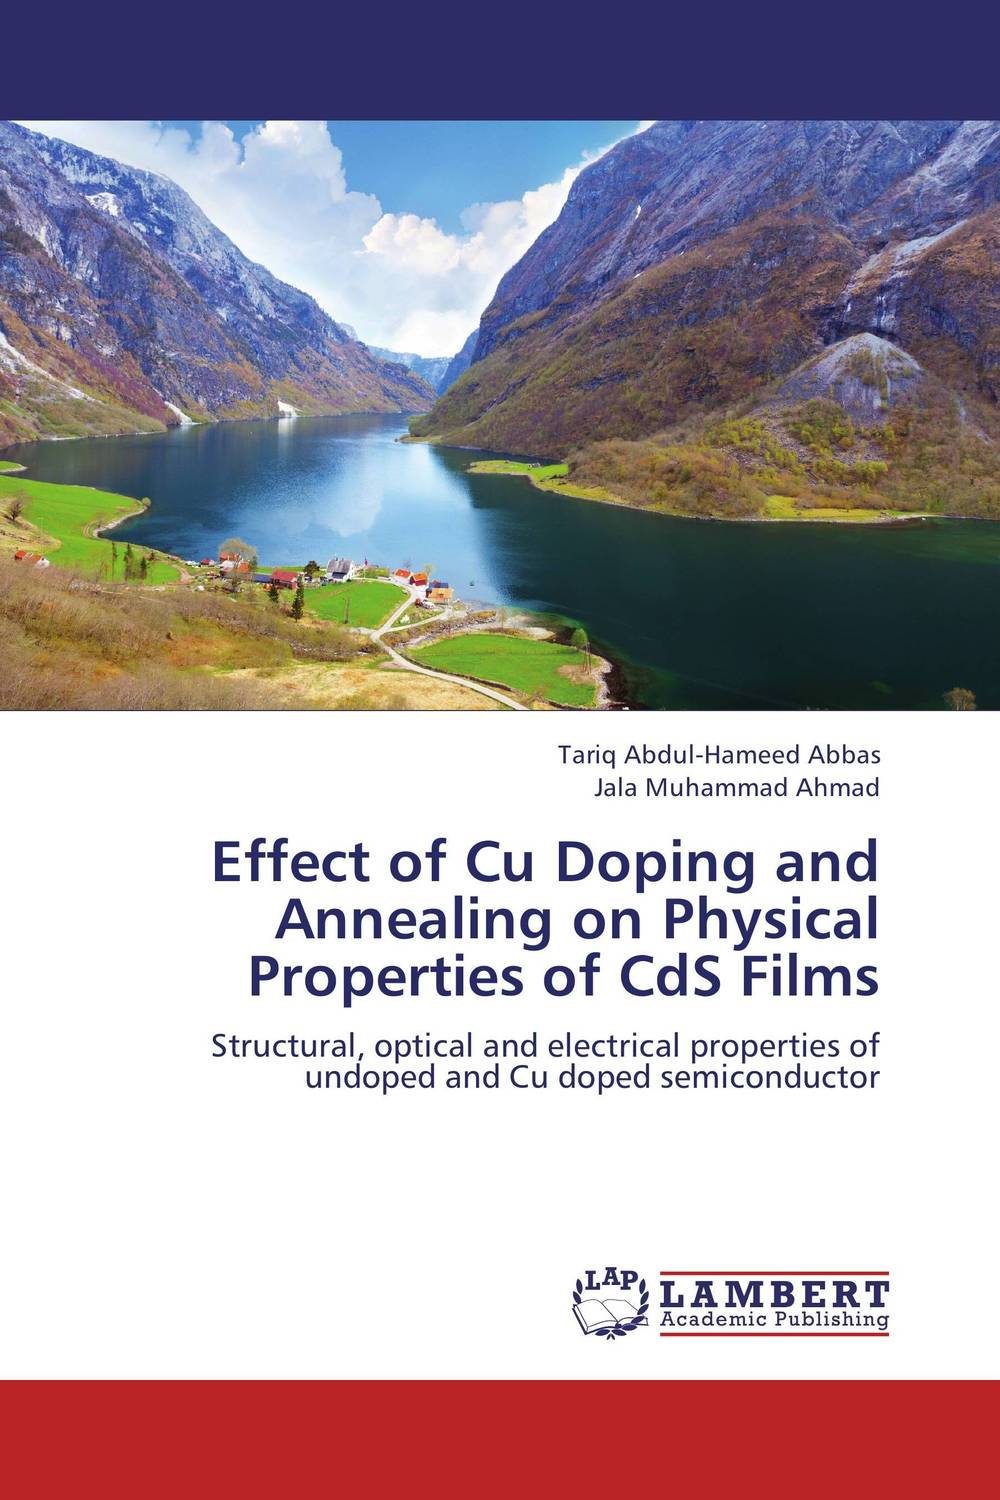 Effect of Cu Doping and Annealing on Physical Properties of CdS Films michael quinten a practical guide to optical metrology for thin films